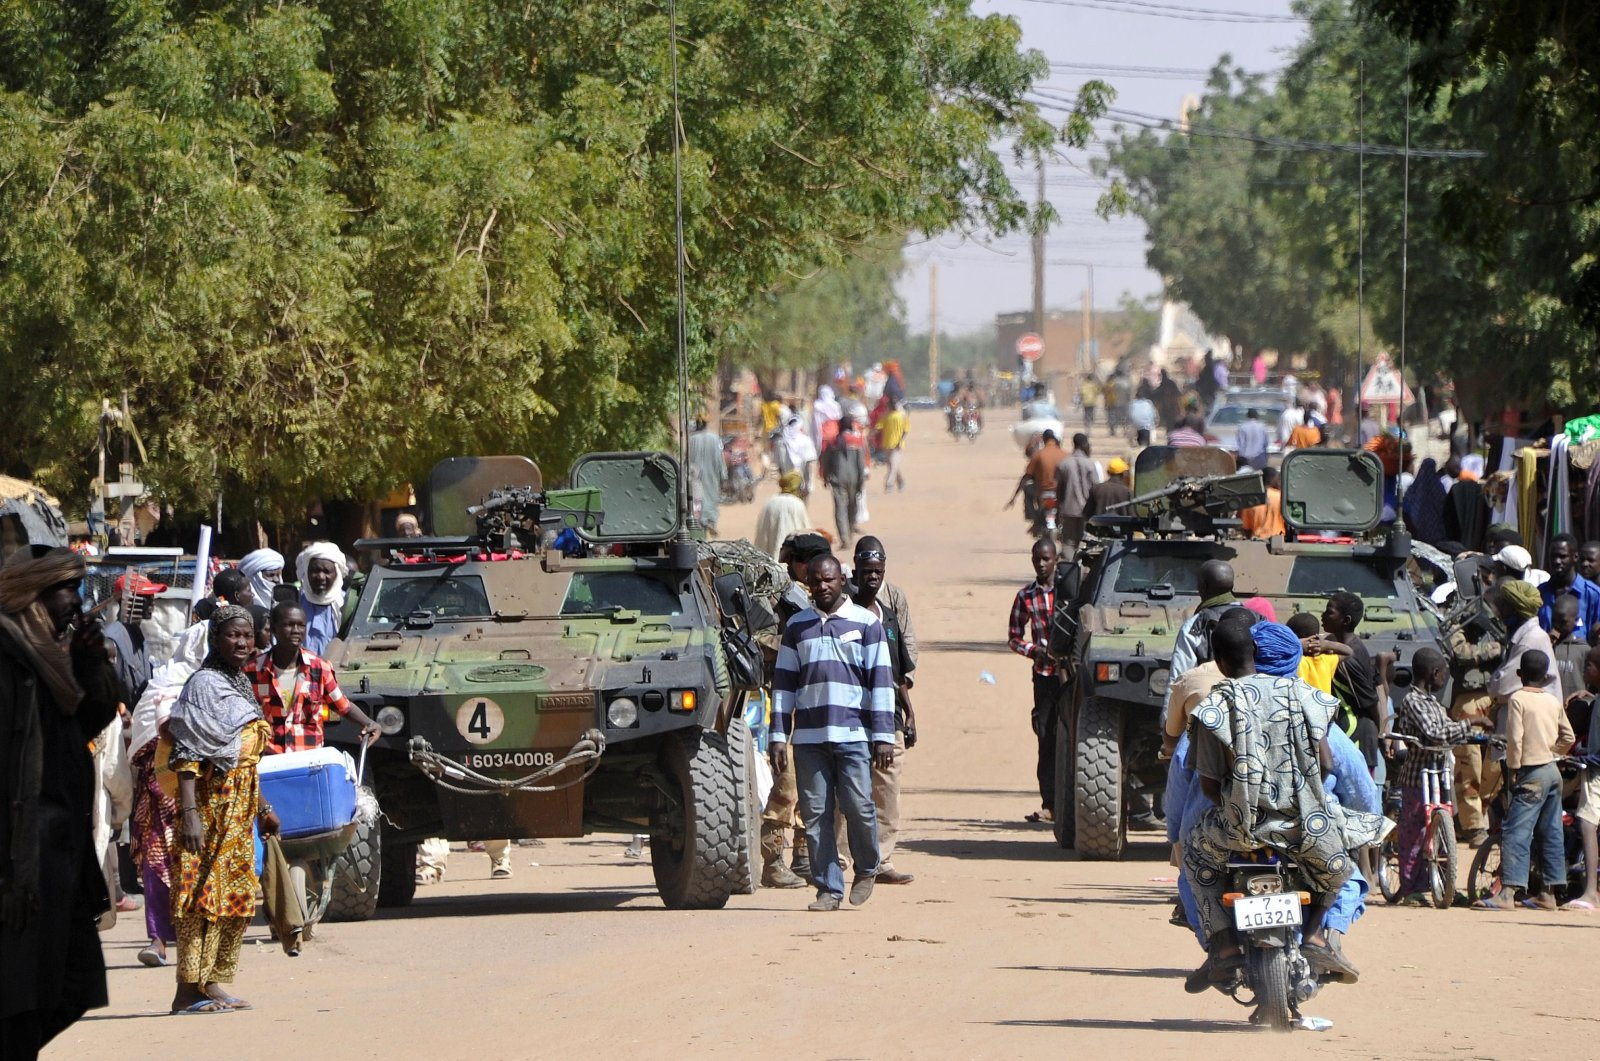 French troops patrol the streets of Gao, Mali, Feb. 3, 2013. (AFP Photo)